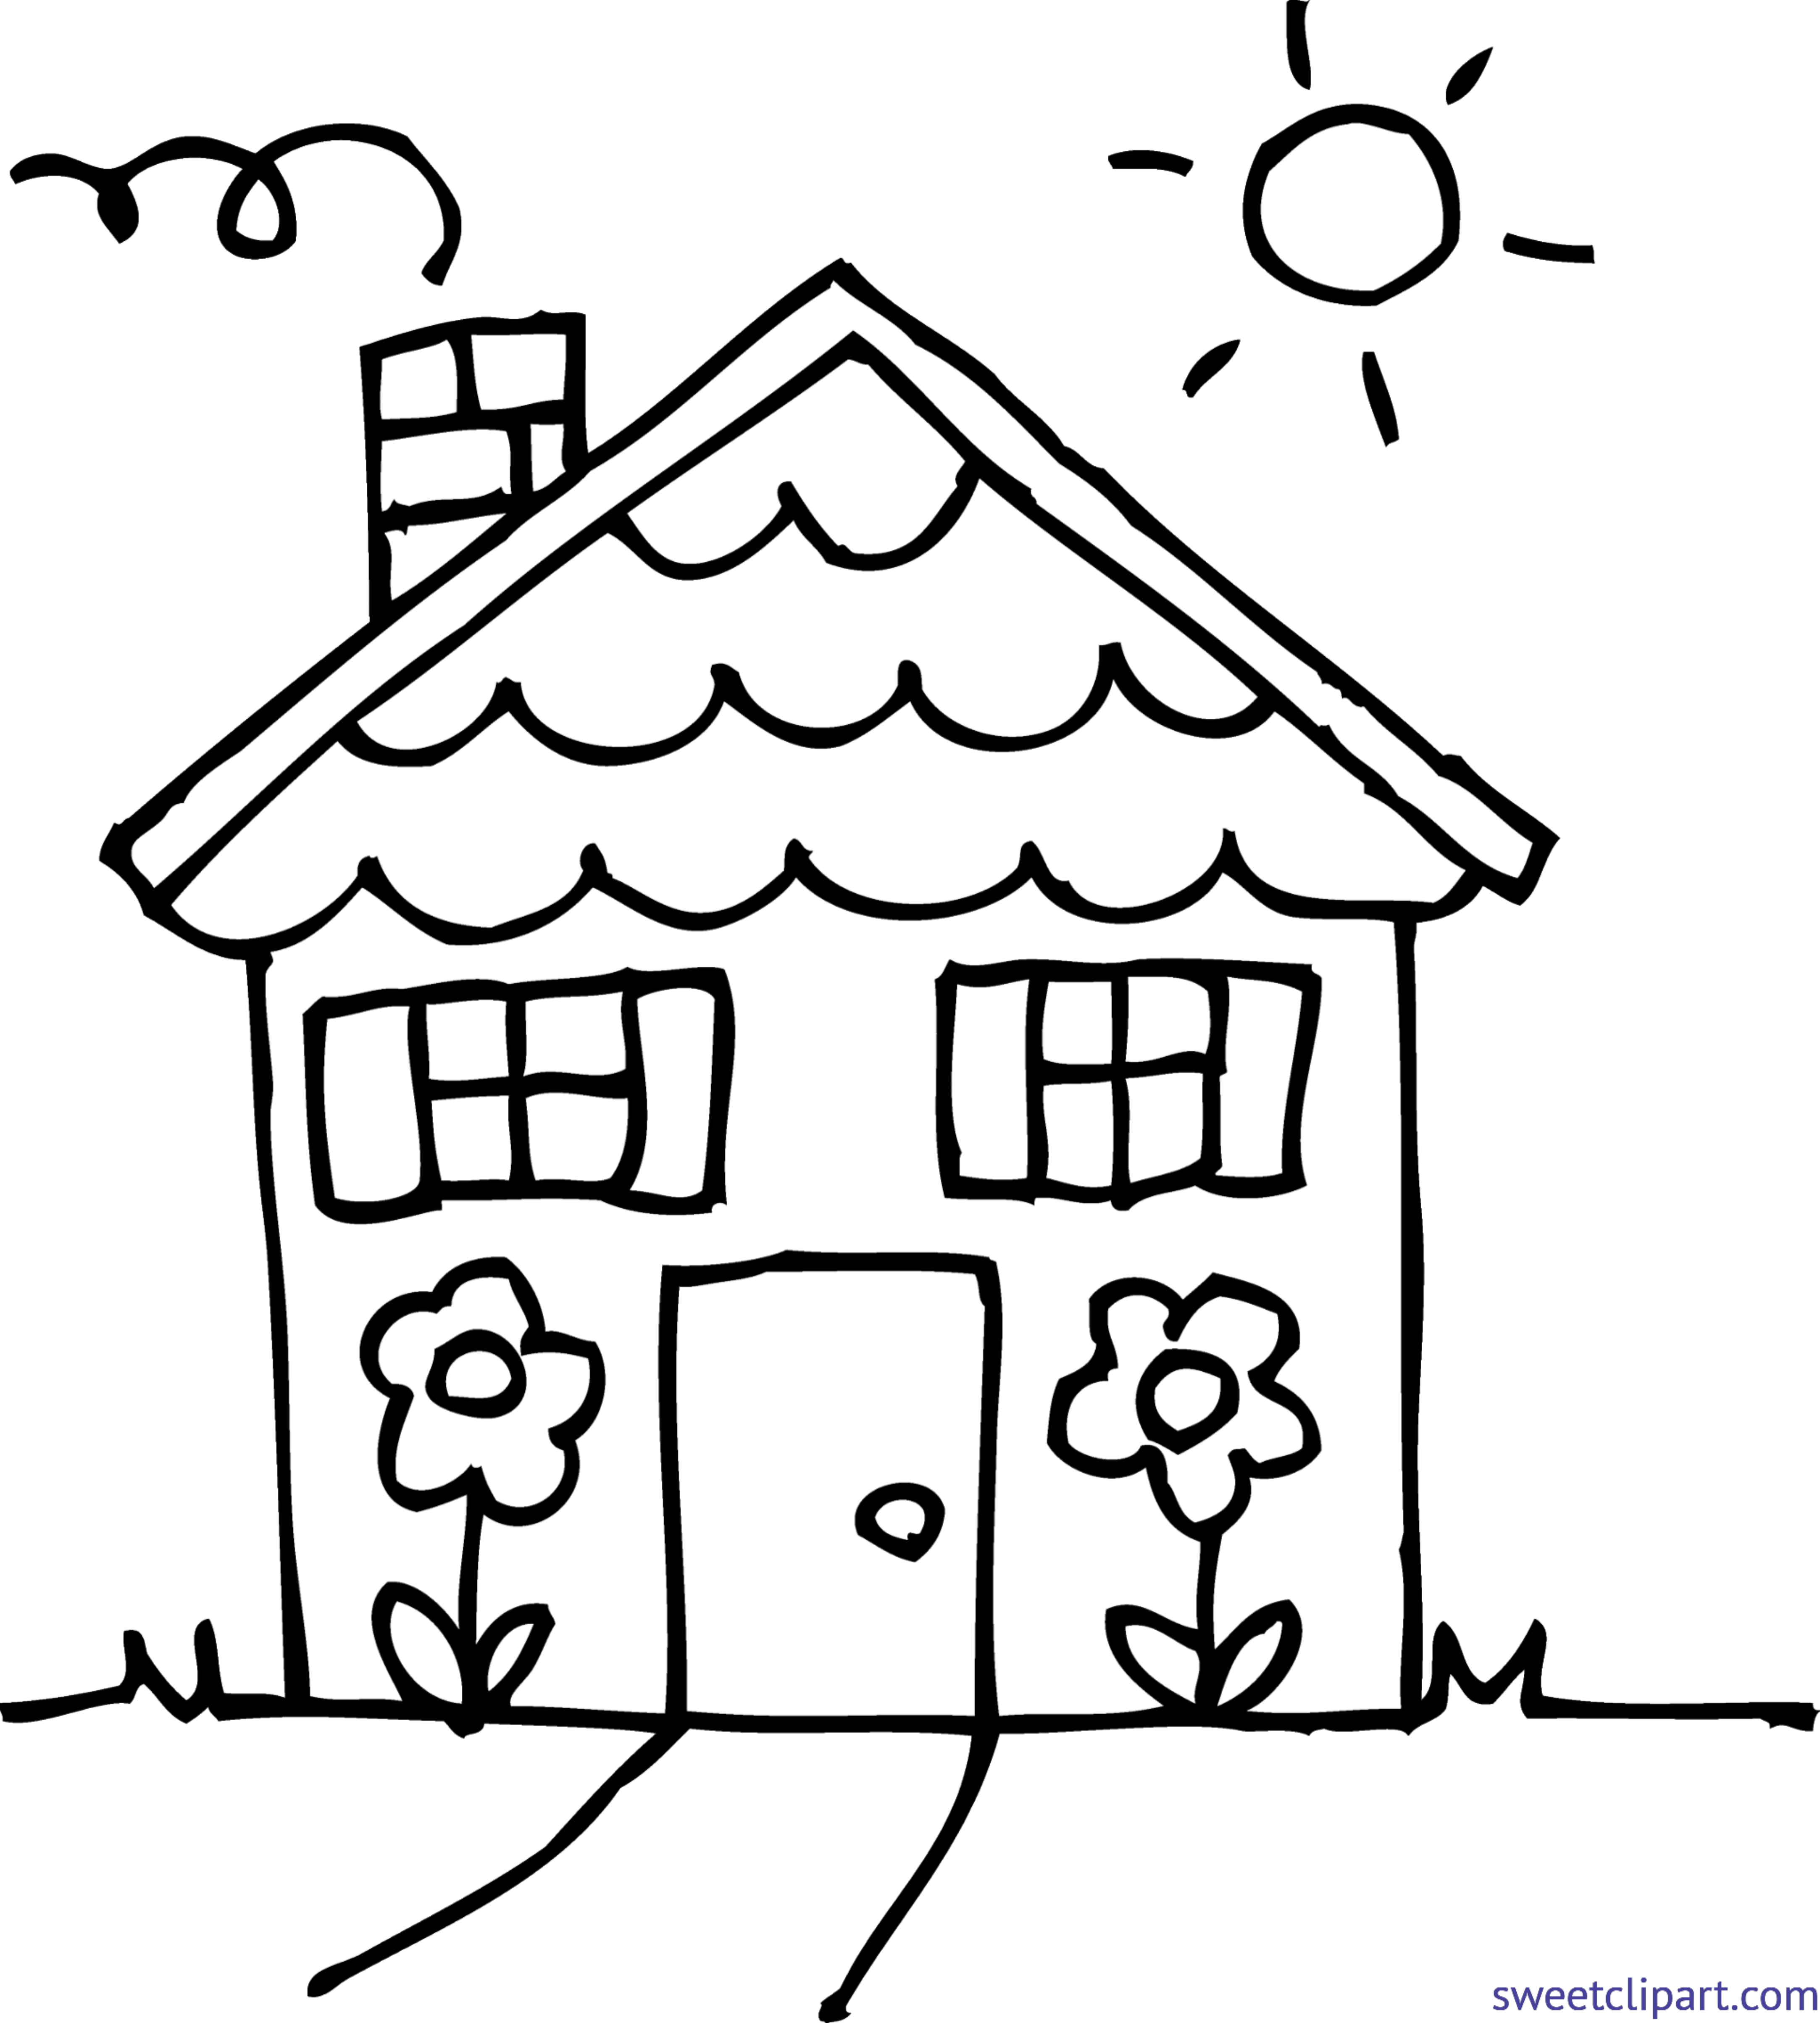 house drawing clip art at getdrawings com free for personal use rh getdrawings com house clipart black and white png house clipart black and white outline